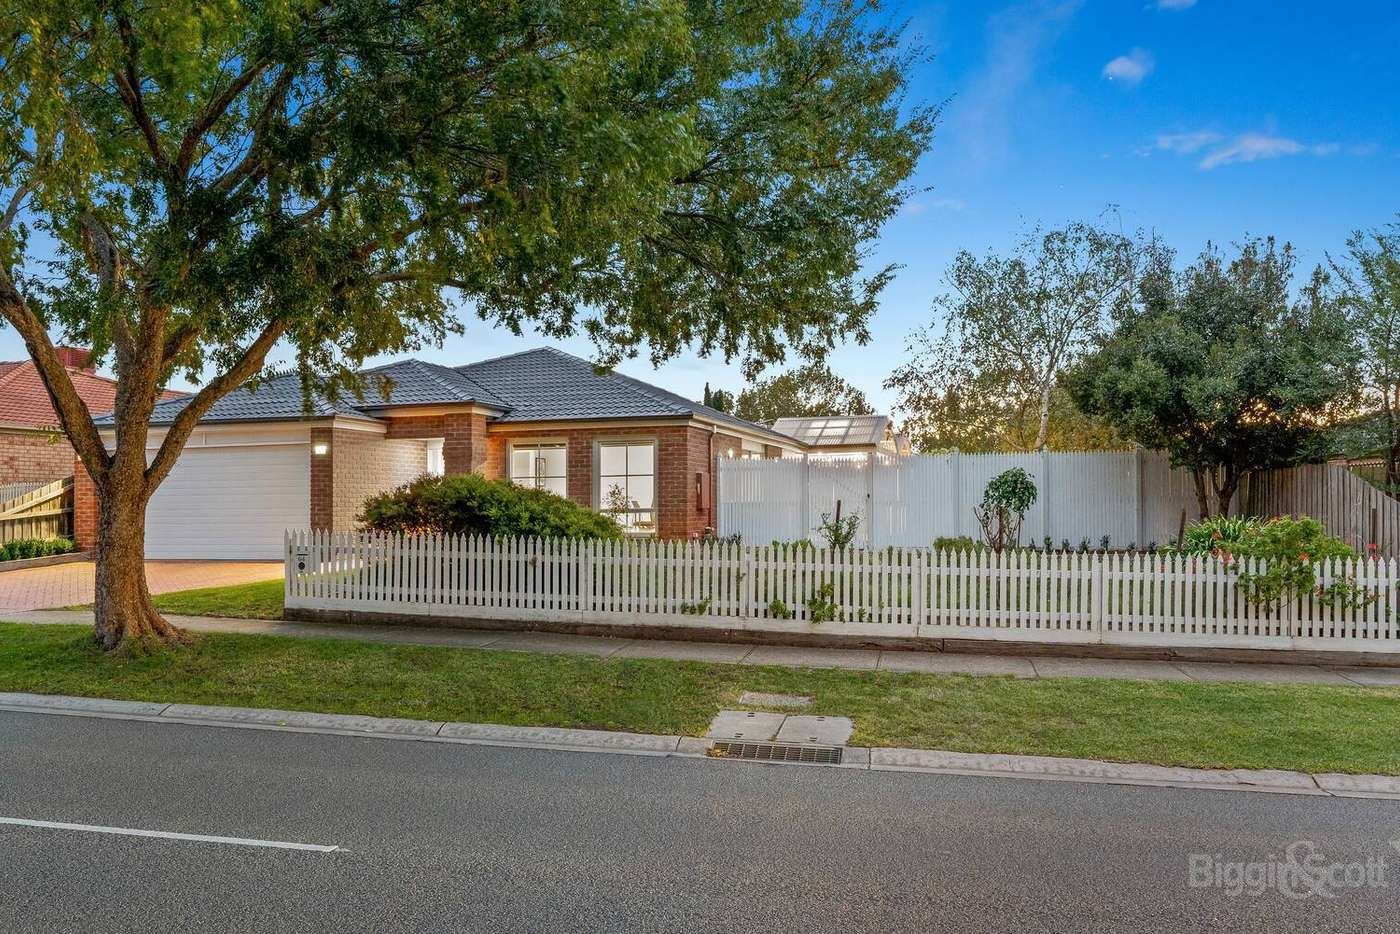 Main view of Homely house listing, 64 Galloway Drive, Narre Warren South VIC 3805